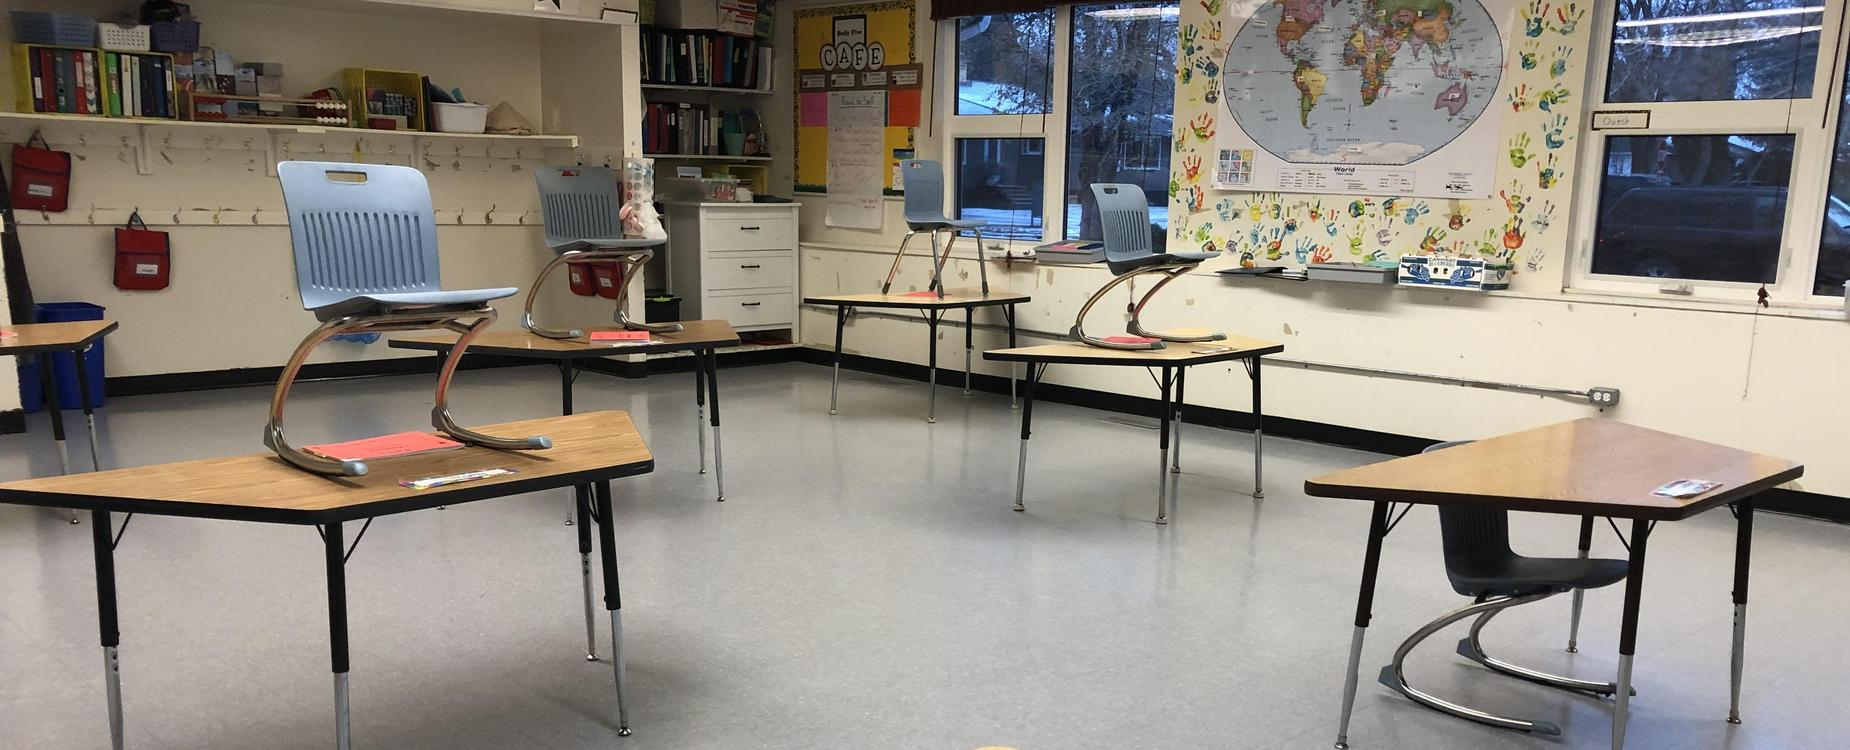 Pictures of school tables in a classroom, spaced far apart to allow for social distancing requirements.